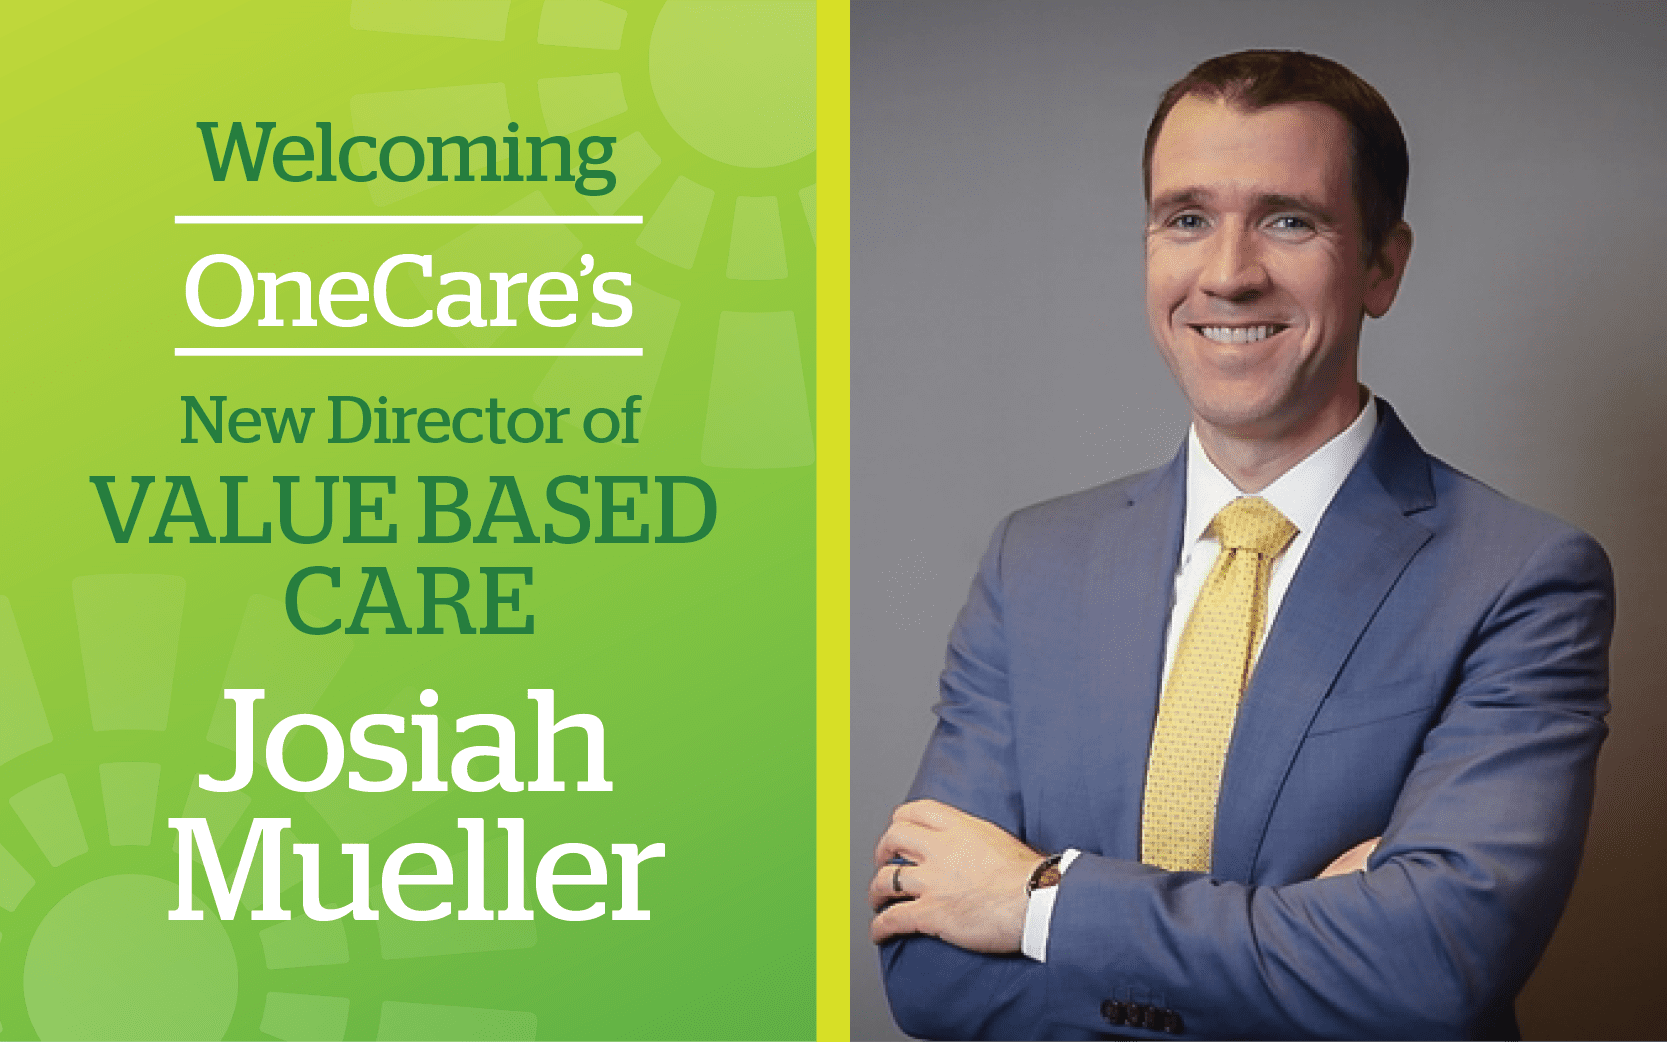 Welcoming New Director of Value Based Care Josiah Mueller